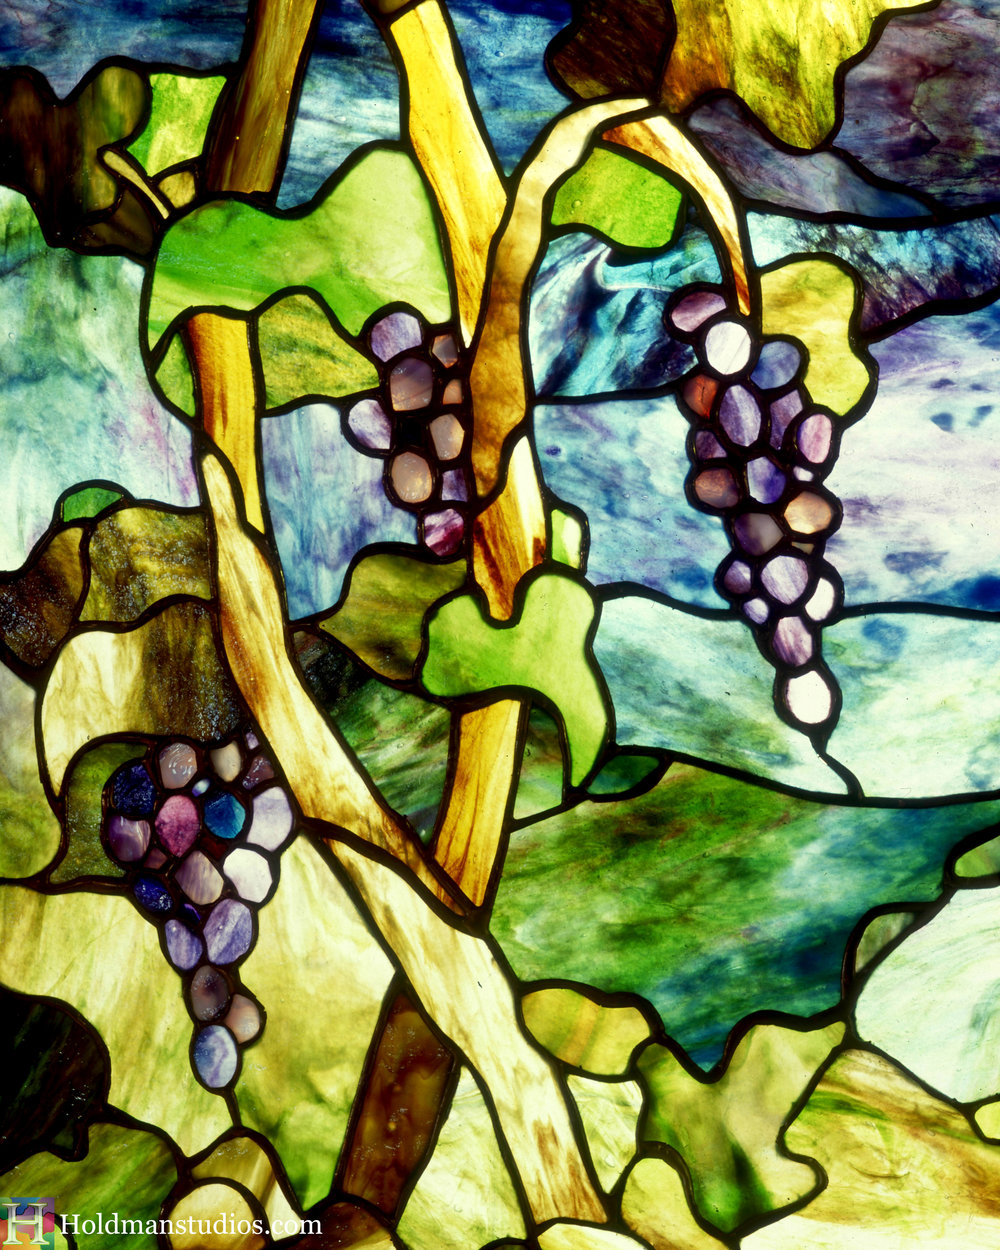 Holdman-Studios-LDS-Mormon-Temple-Winter-Quarters-Omaha-Nebraska-Tree-of-Life-Grapes-Vines-Leaves-Sego-Lily-Flowers-Windows-Closeup.jpg